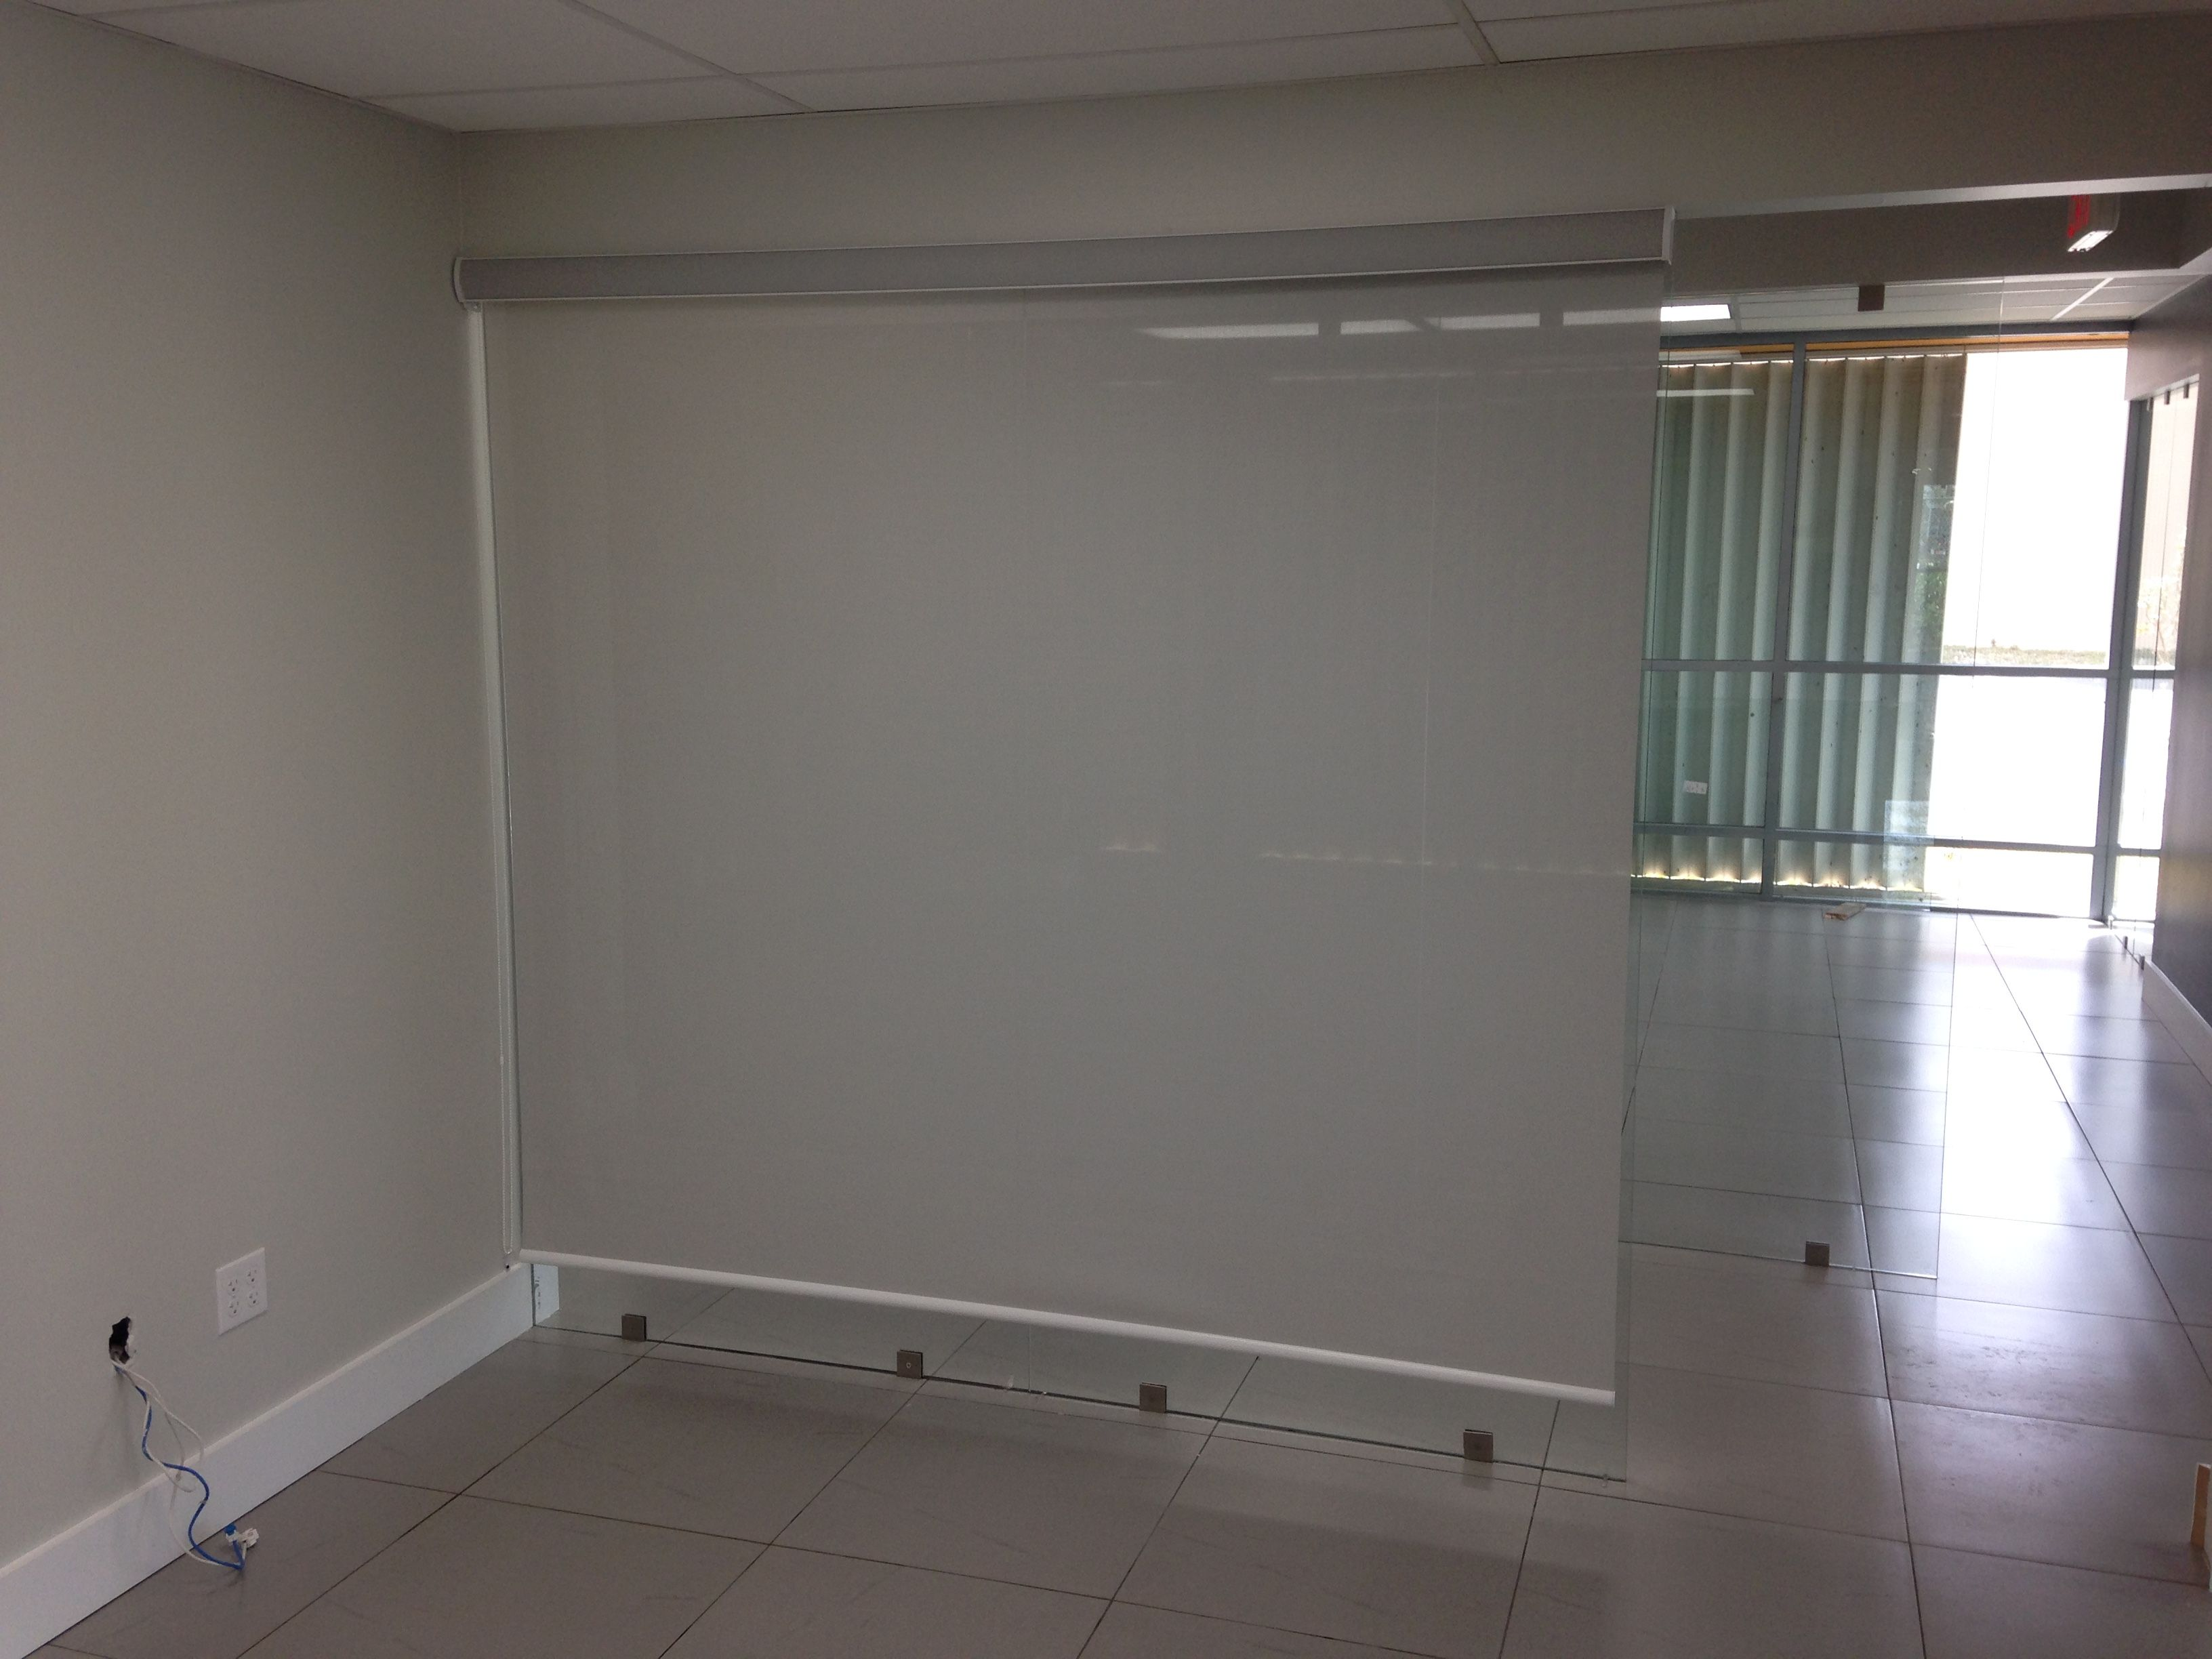 Office Blinds, Offices, Bureaus, Desks, Office Spaces, The Office,  Corporate Offices